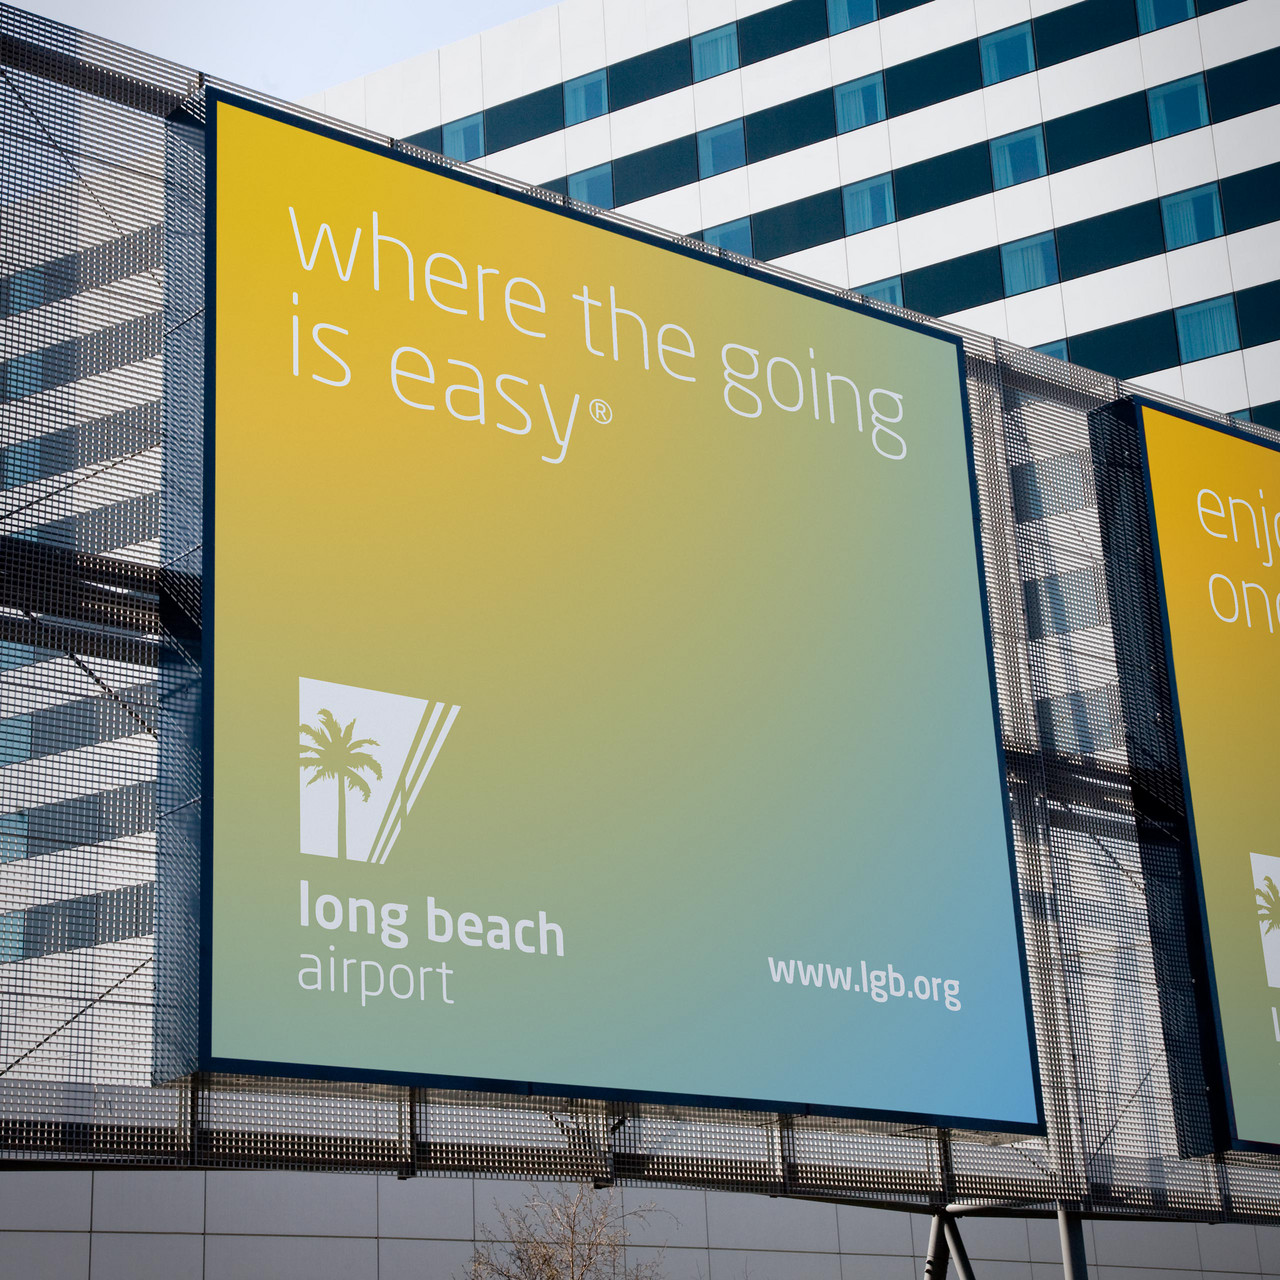 Long Beach Airport advertisement